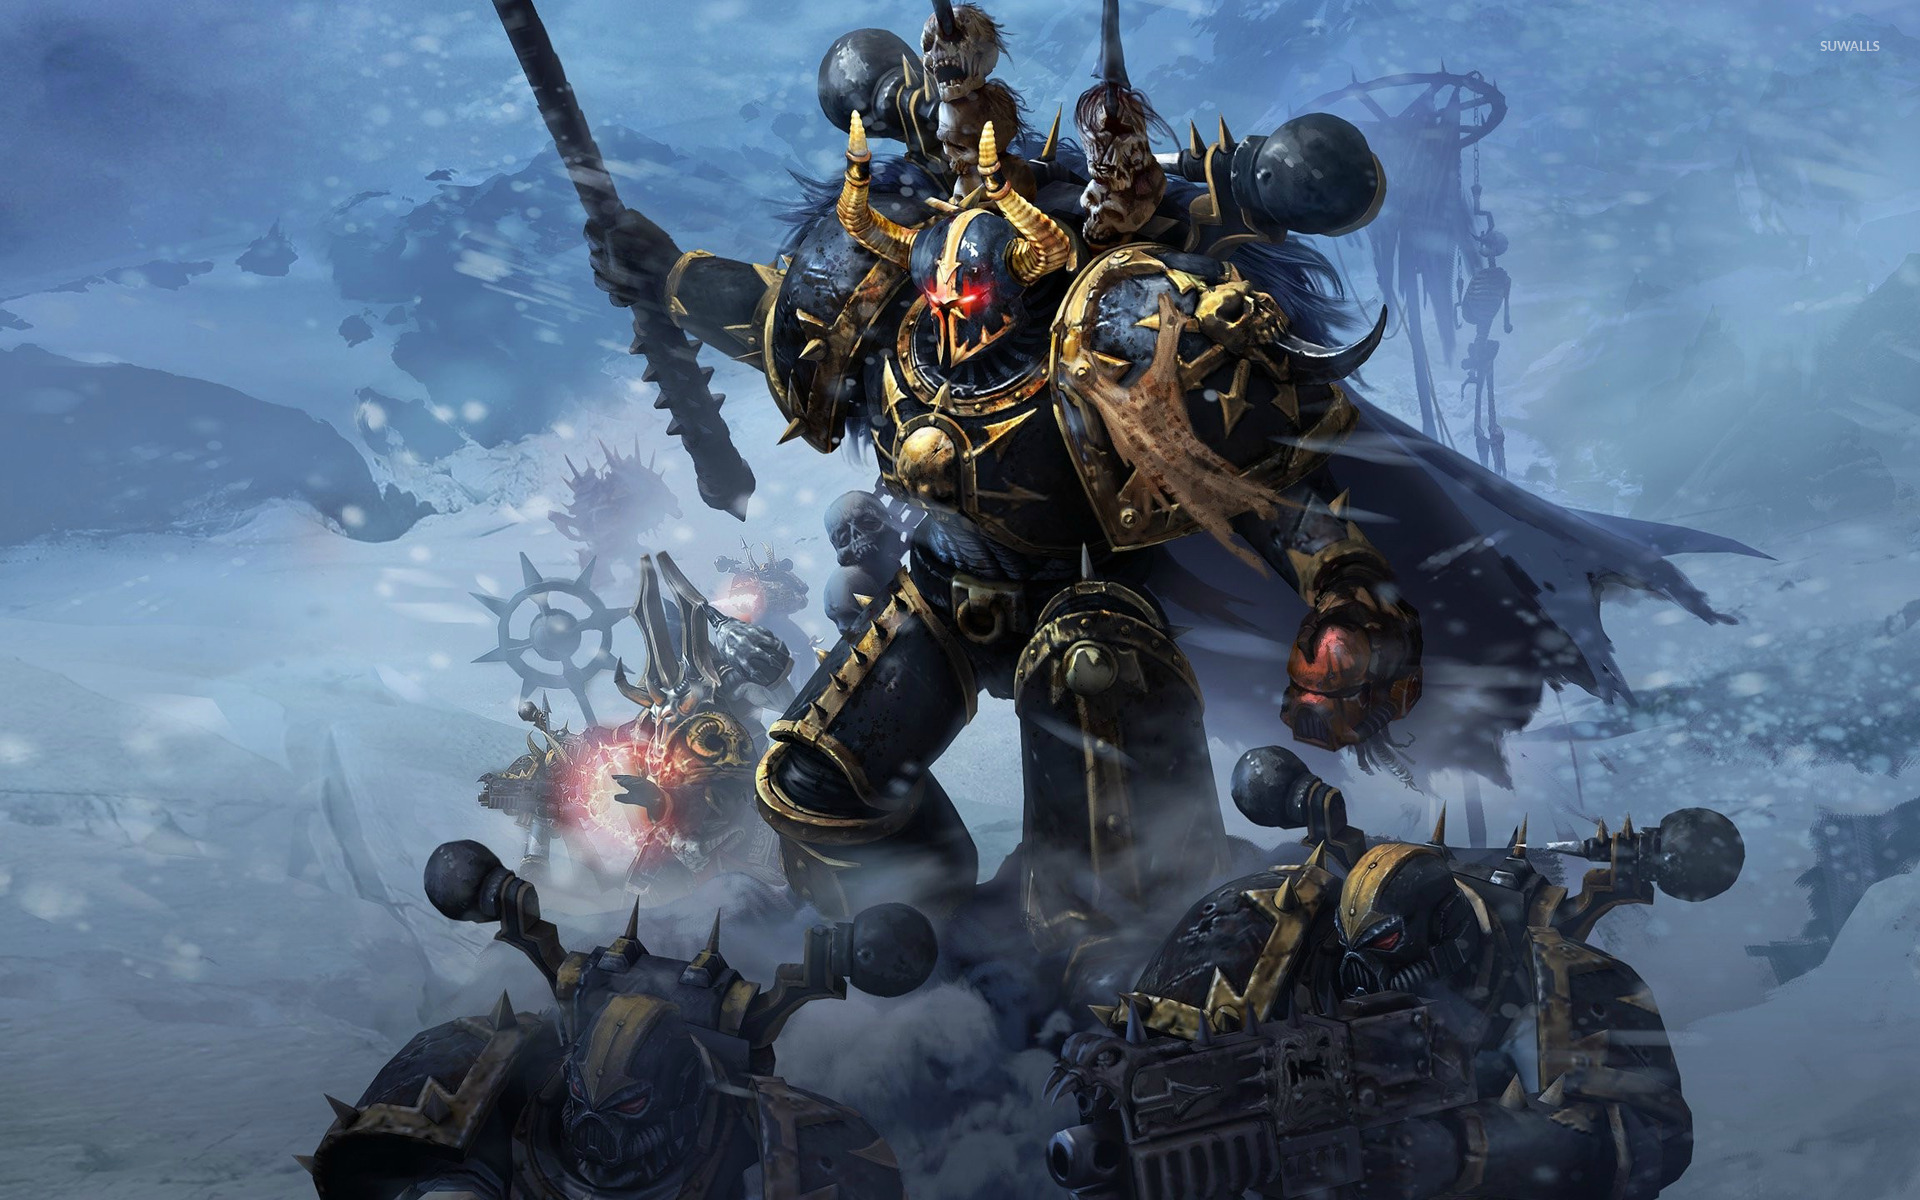 Warhammer 40k Space Marine Wallpaper Warhammer 40000 space marine 1366x768